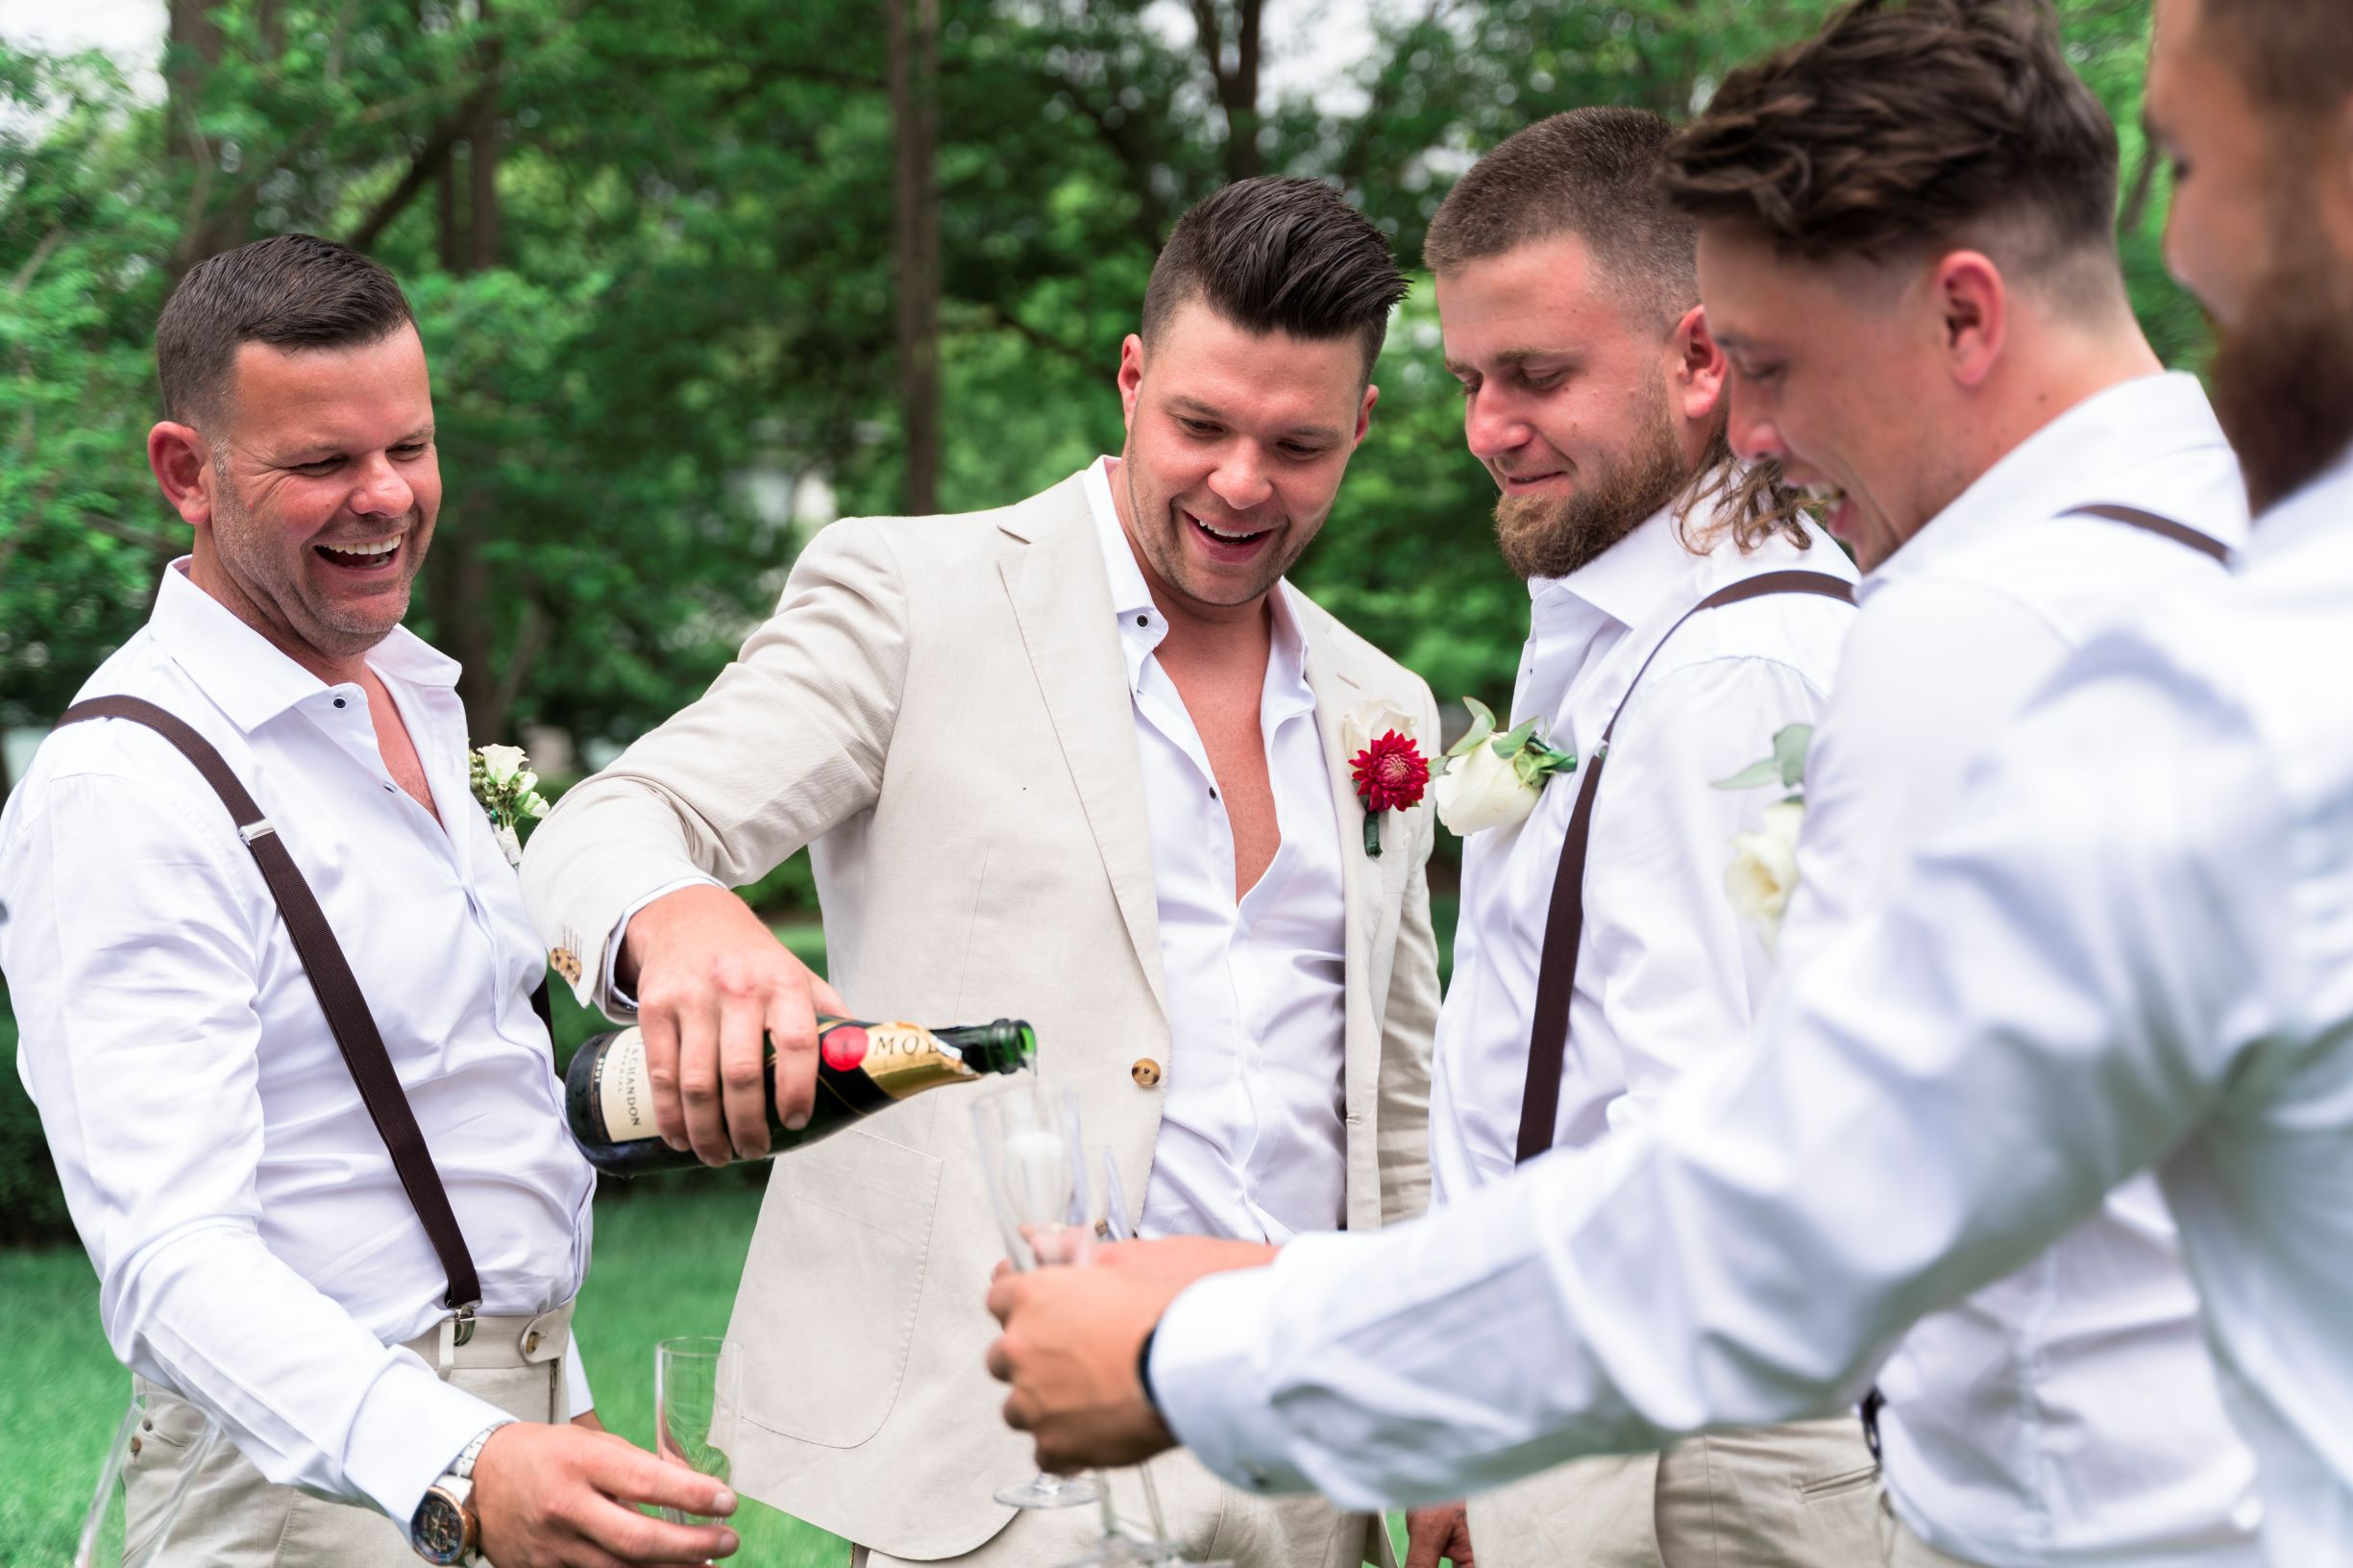 Lynda Leith wedding celebrant. Groomsmen celebrating at a wedding